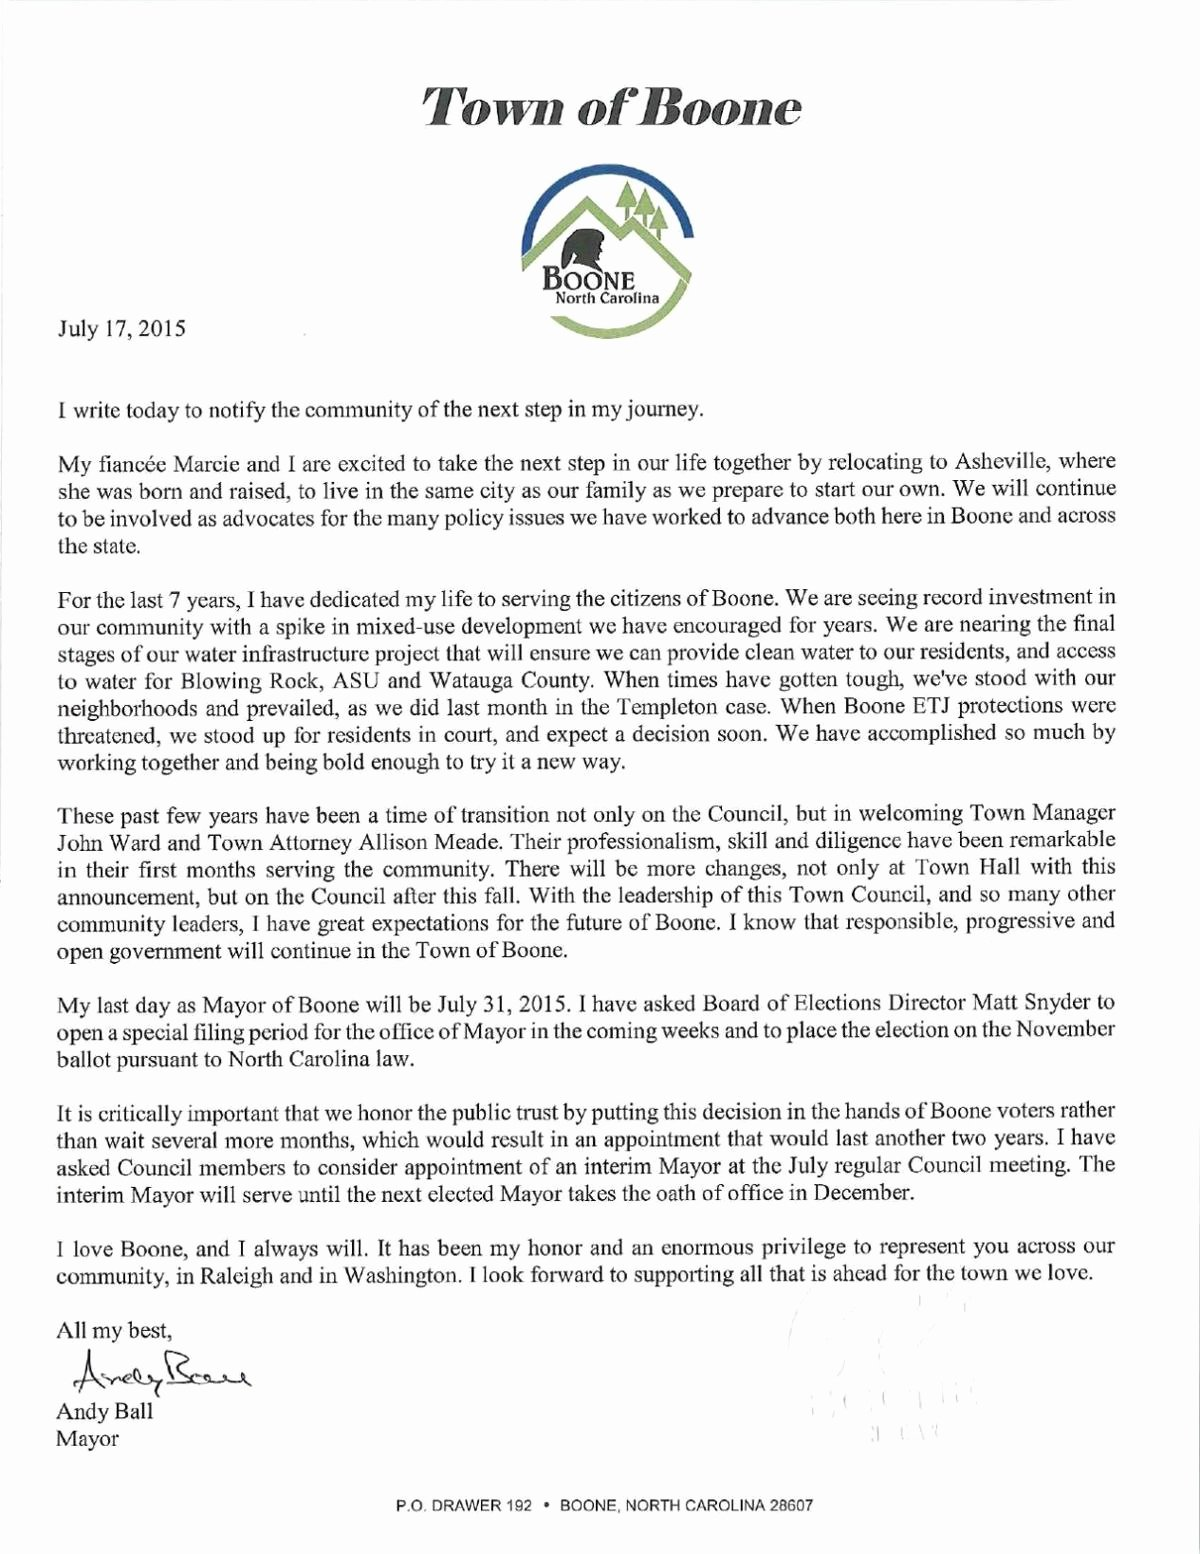 Lox Letter Example Inspirational Ball to Resign as Boone Mayor News